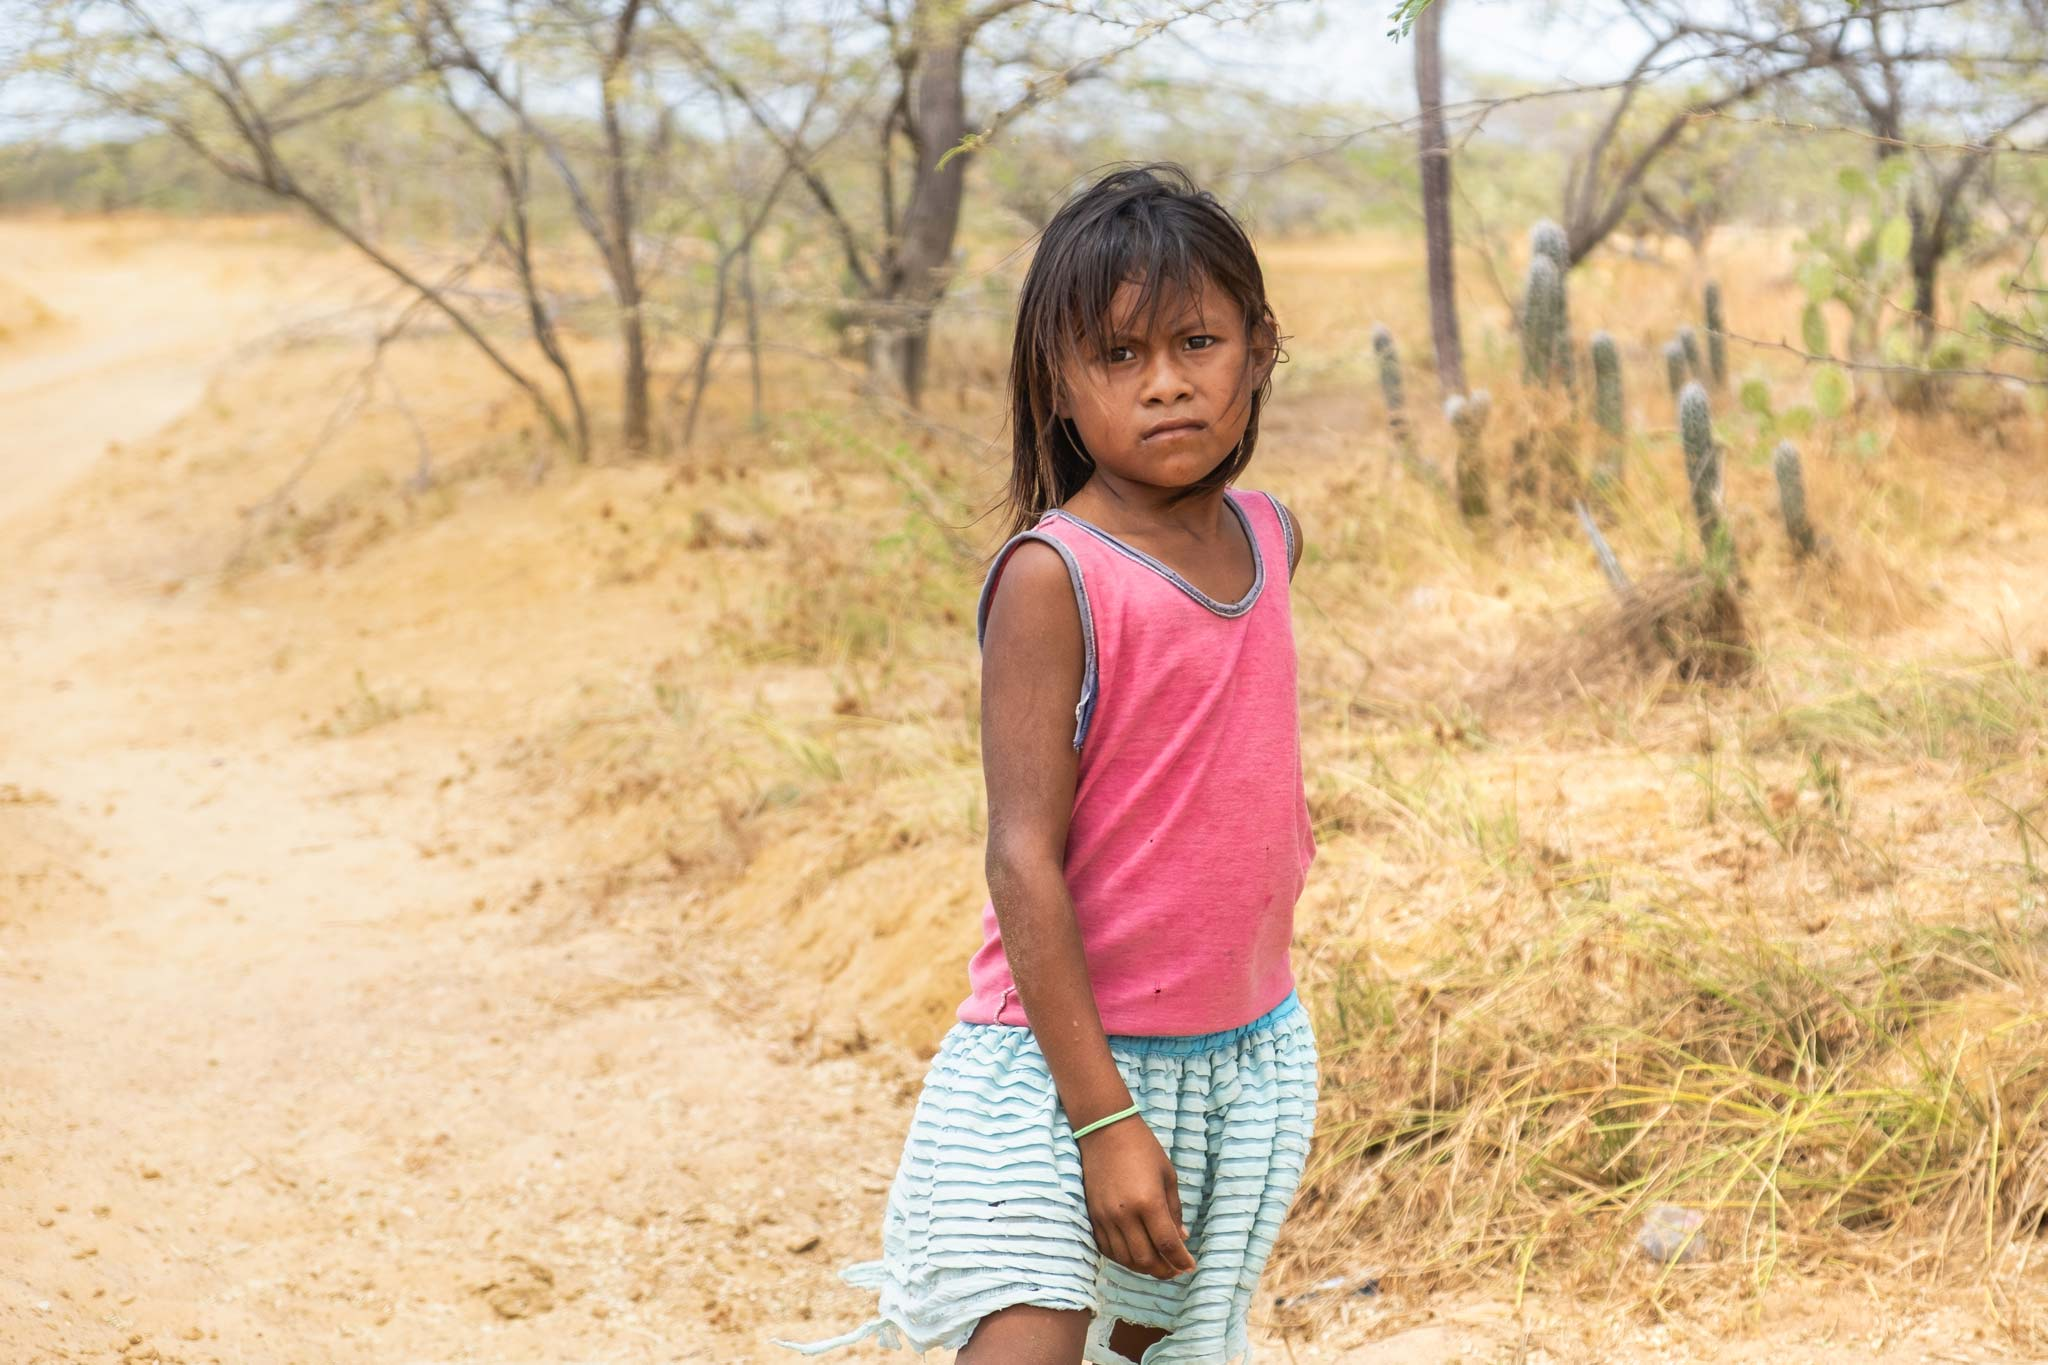 wayuu-child-guajira-colombia